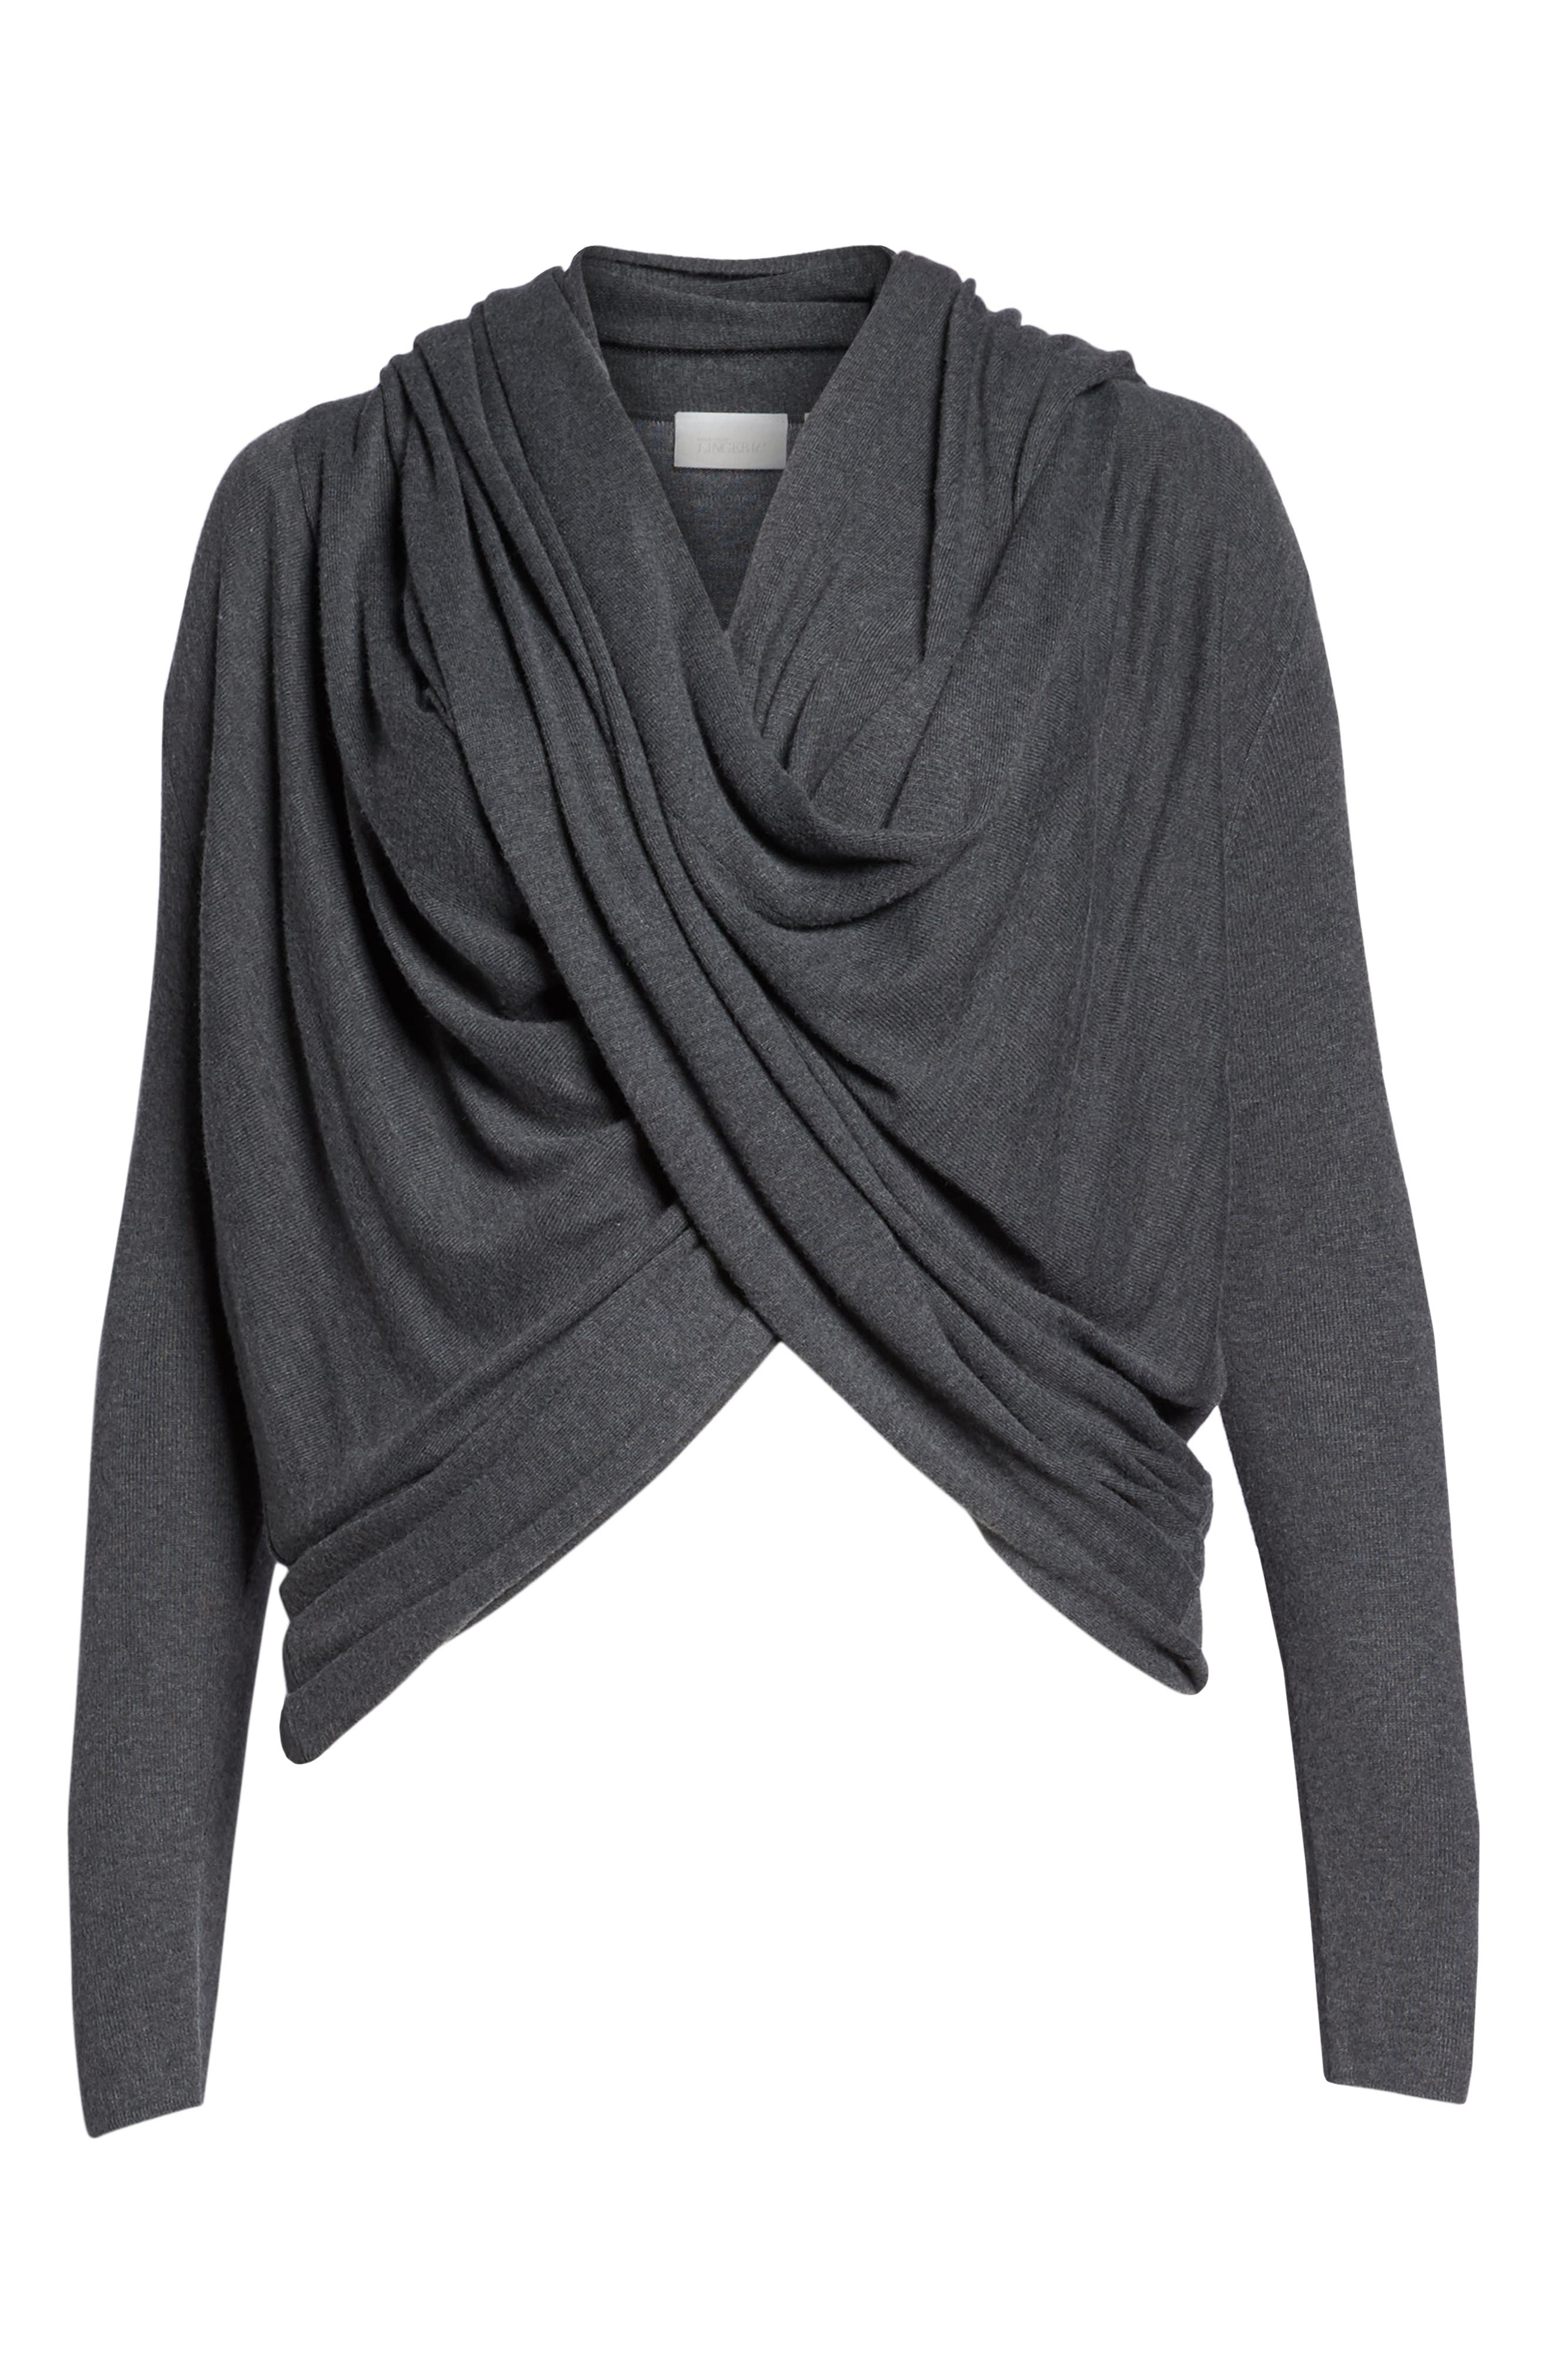 Wrap Front Cardigan,                             Alternate thumbnail 6, color,                             DARK STEEL HEATHER